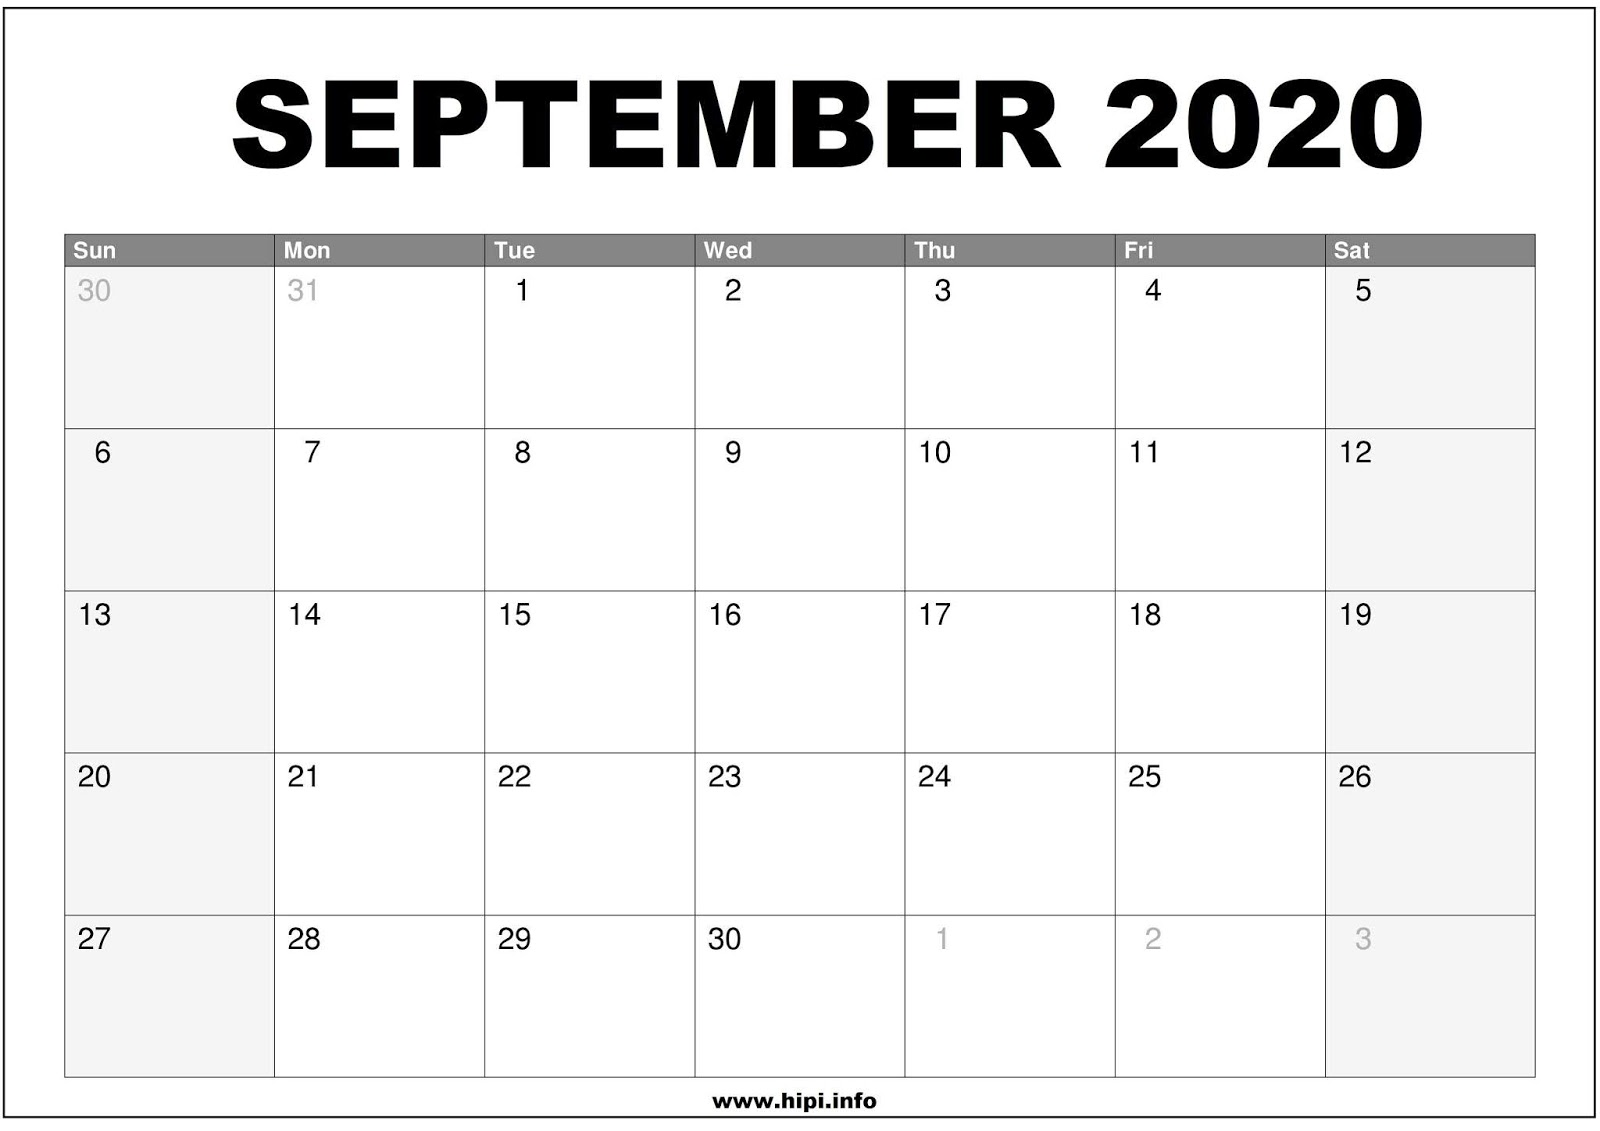 Calendar September 2020 Printable.Calendars Printable Twitter Headers Facebook Covers